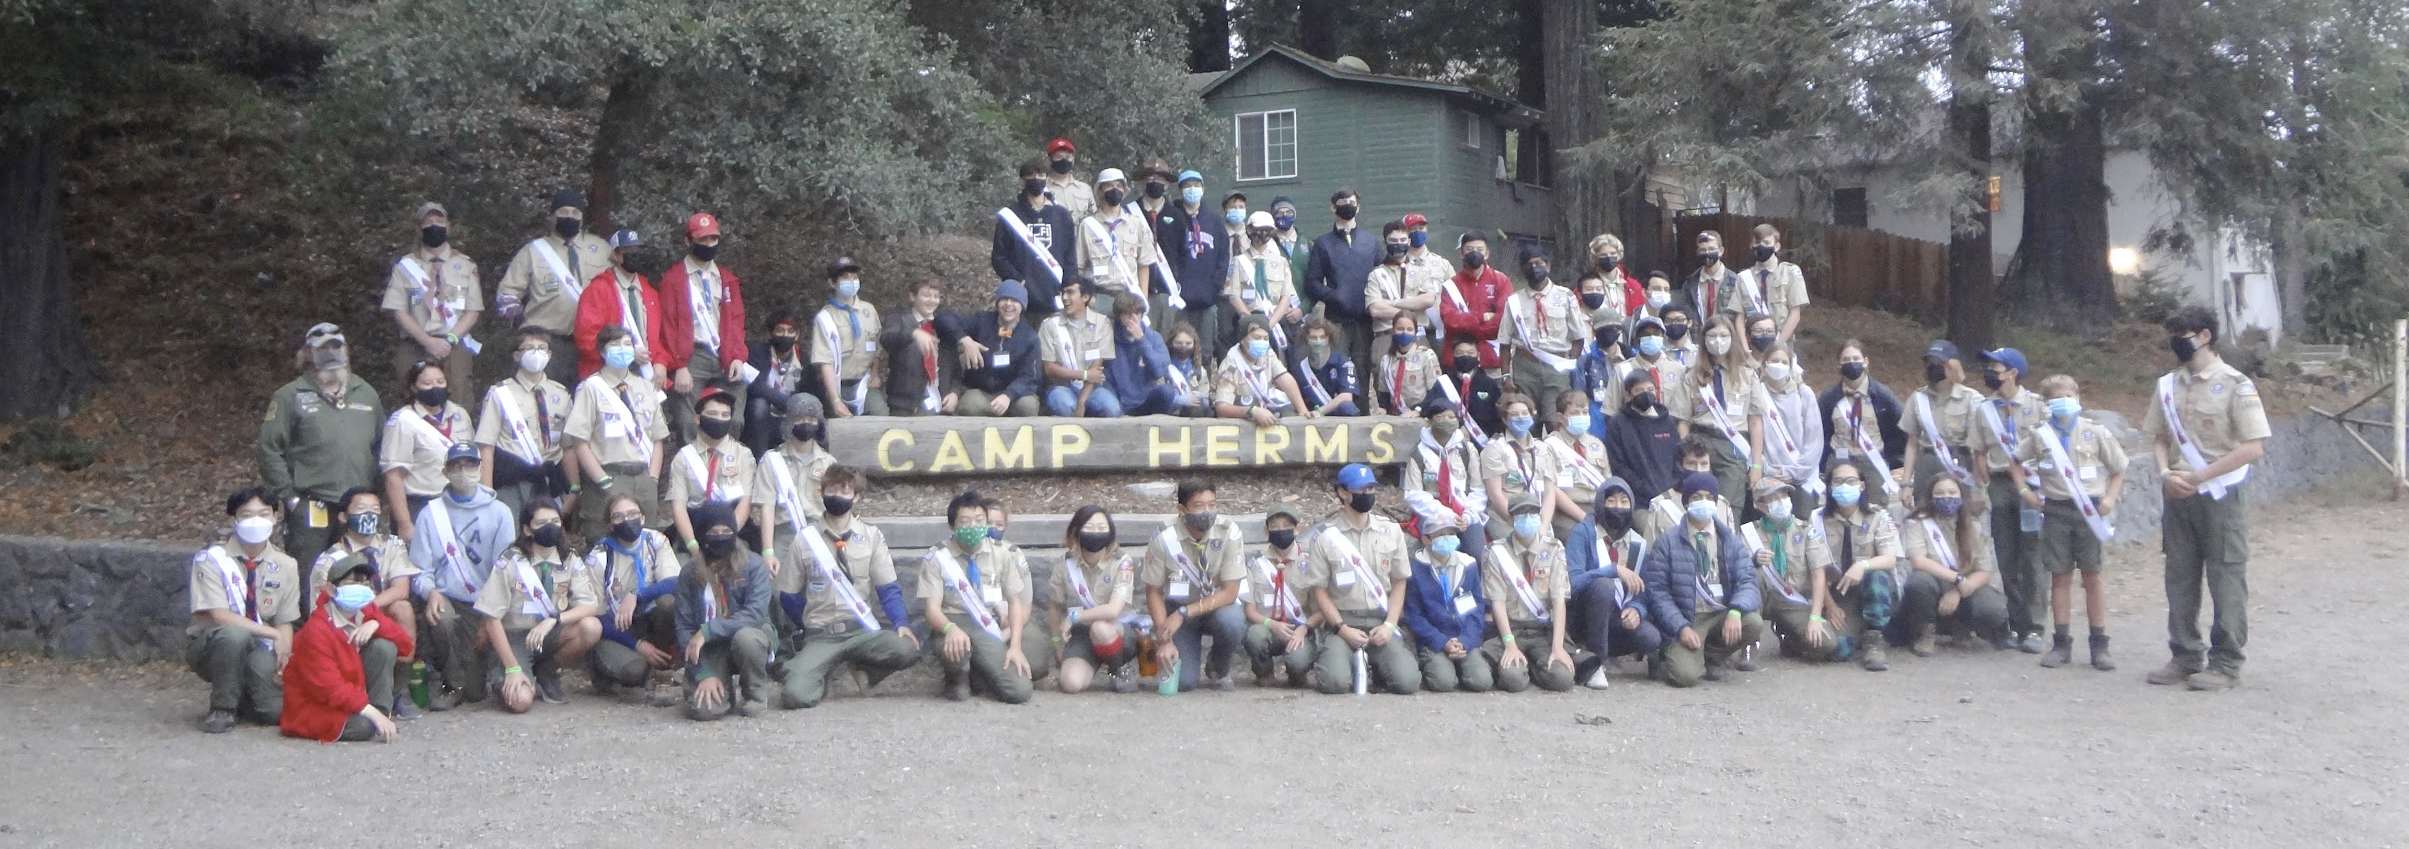 Arrrowmen pose for a photo in front of the Camp Herms sign at Induction Weekend